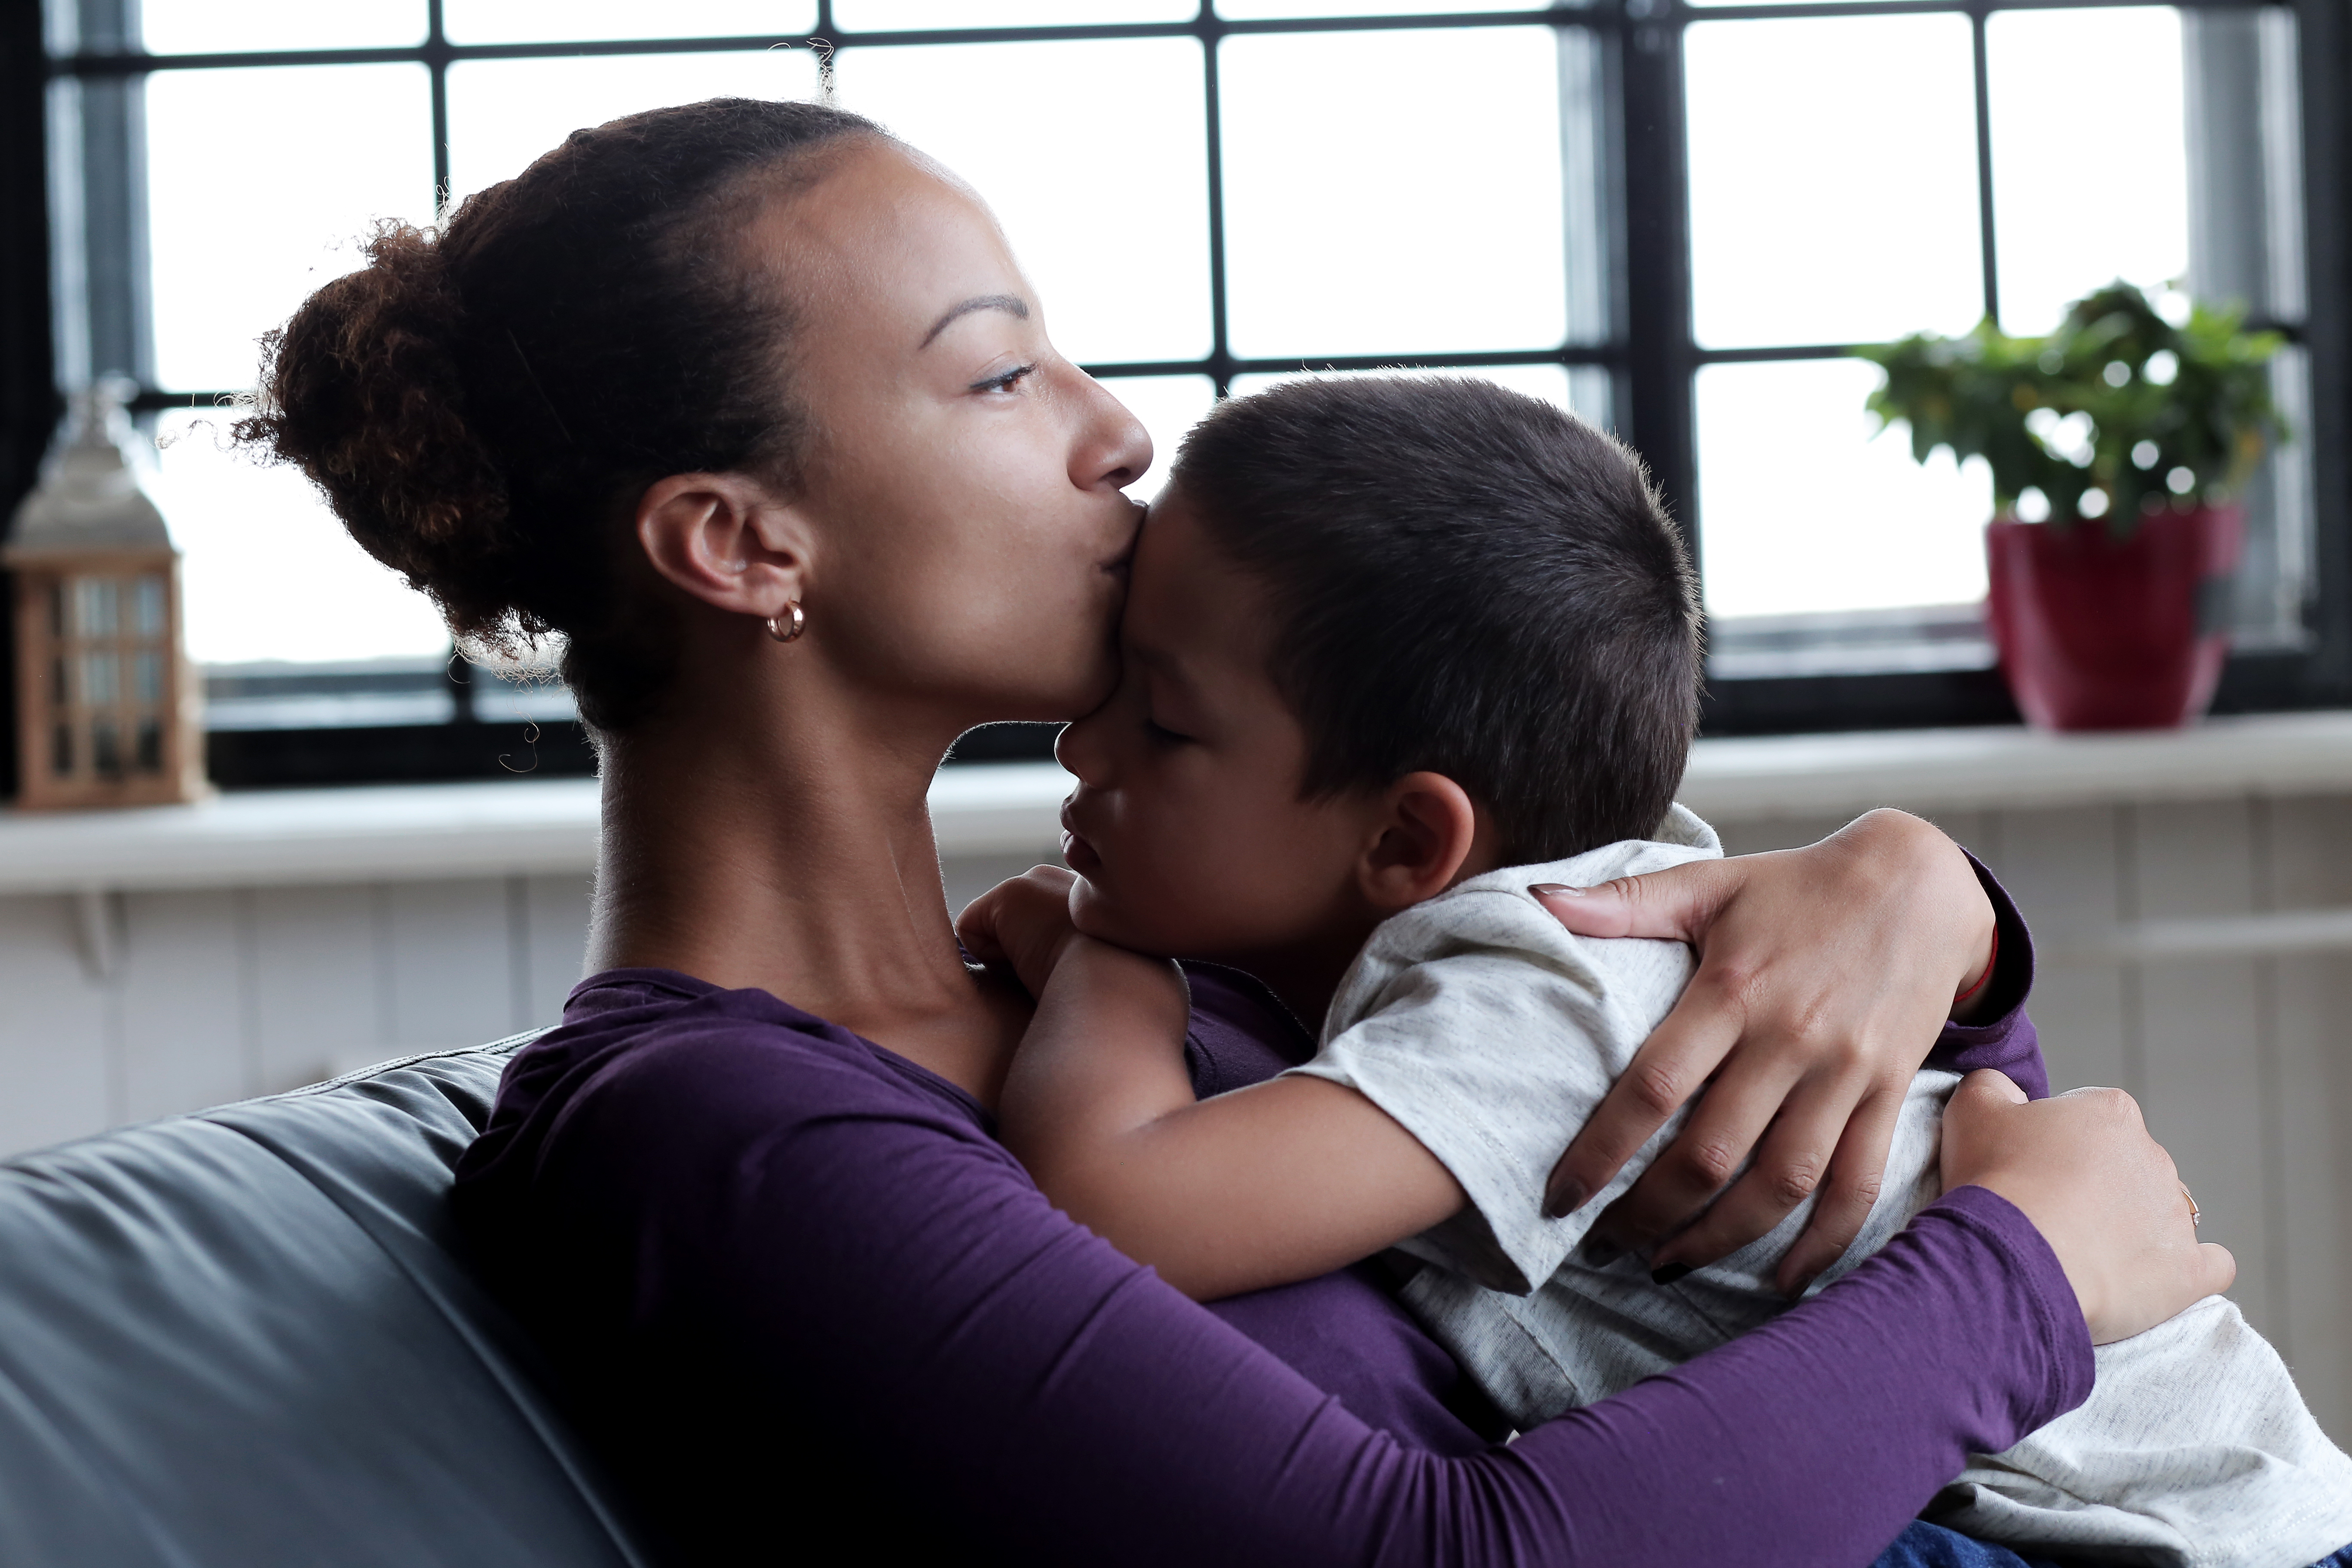 Mom discovers child has been sexually abused. What now?